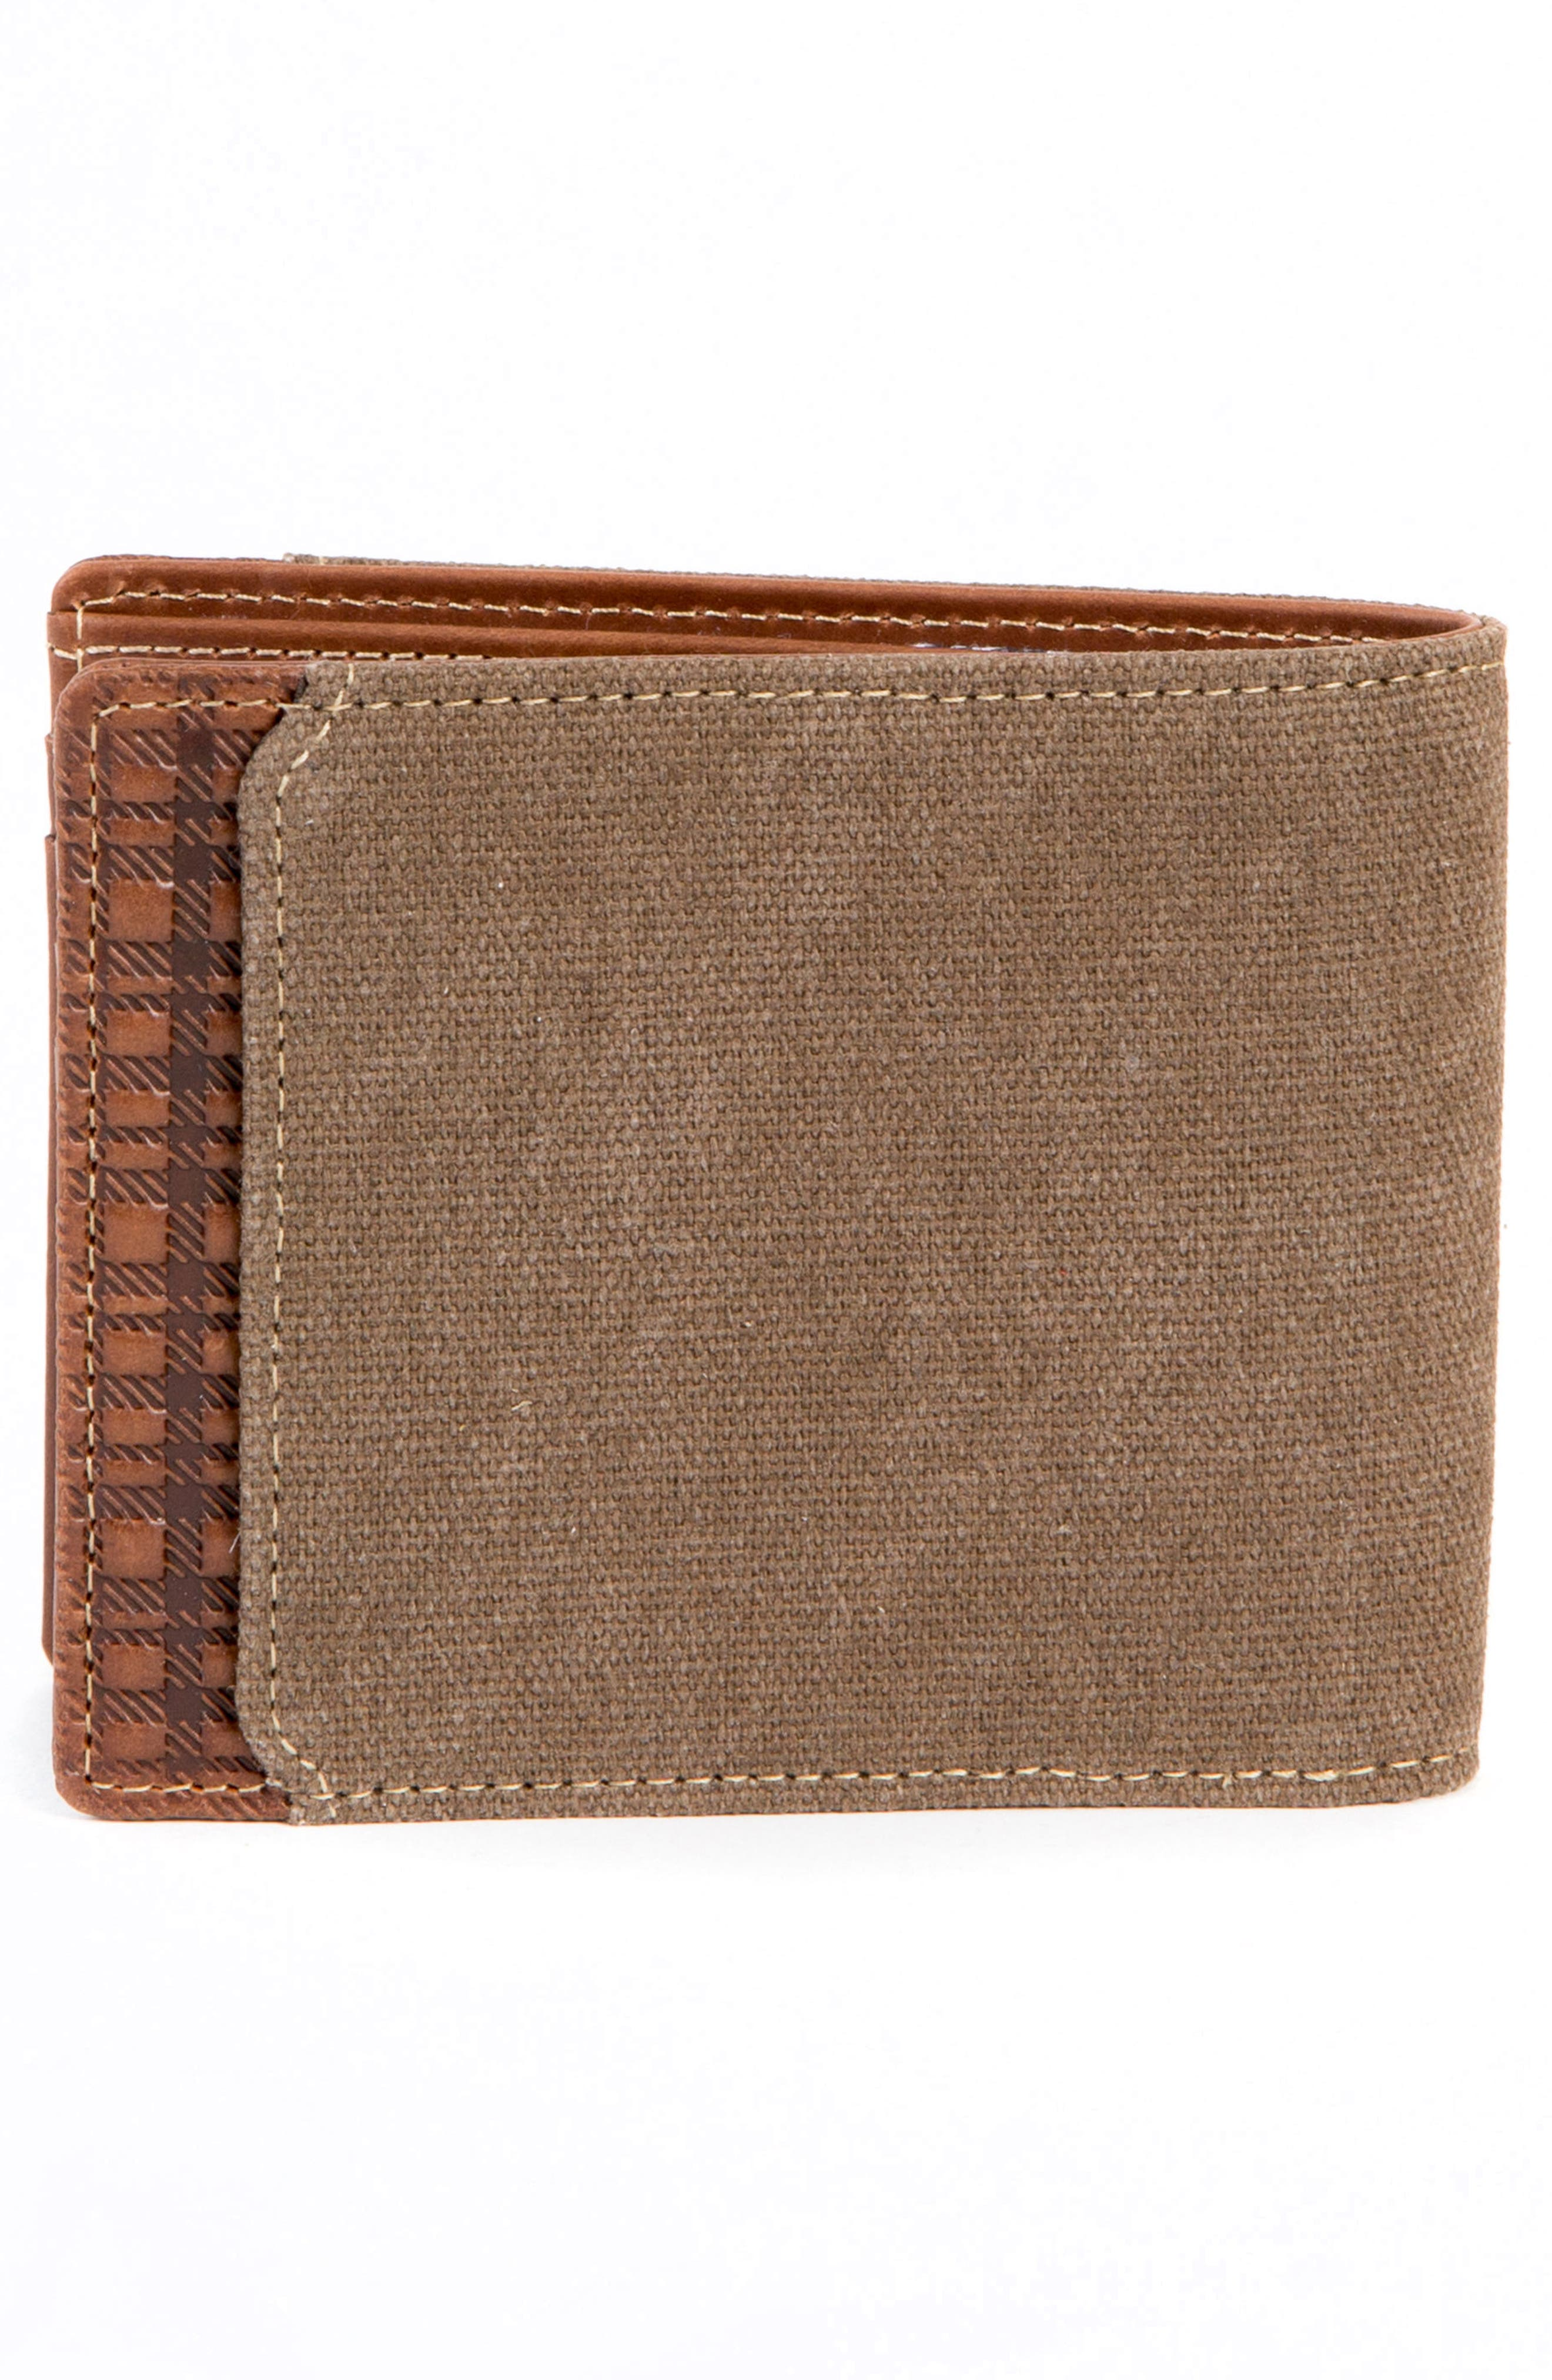 Bryant LTE Wallet,                             Alternate thumbnail 4, color,                             MAHOGANY/ HEATHER